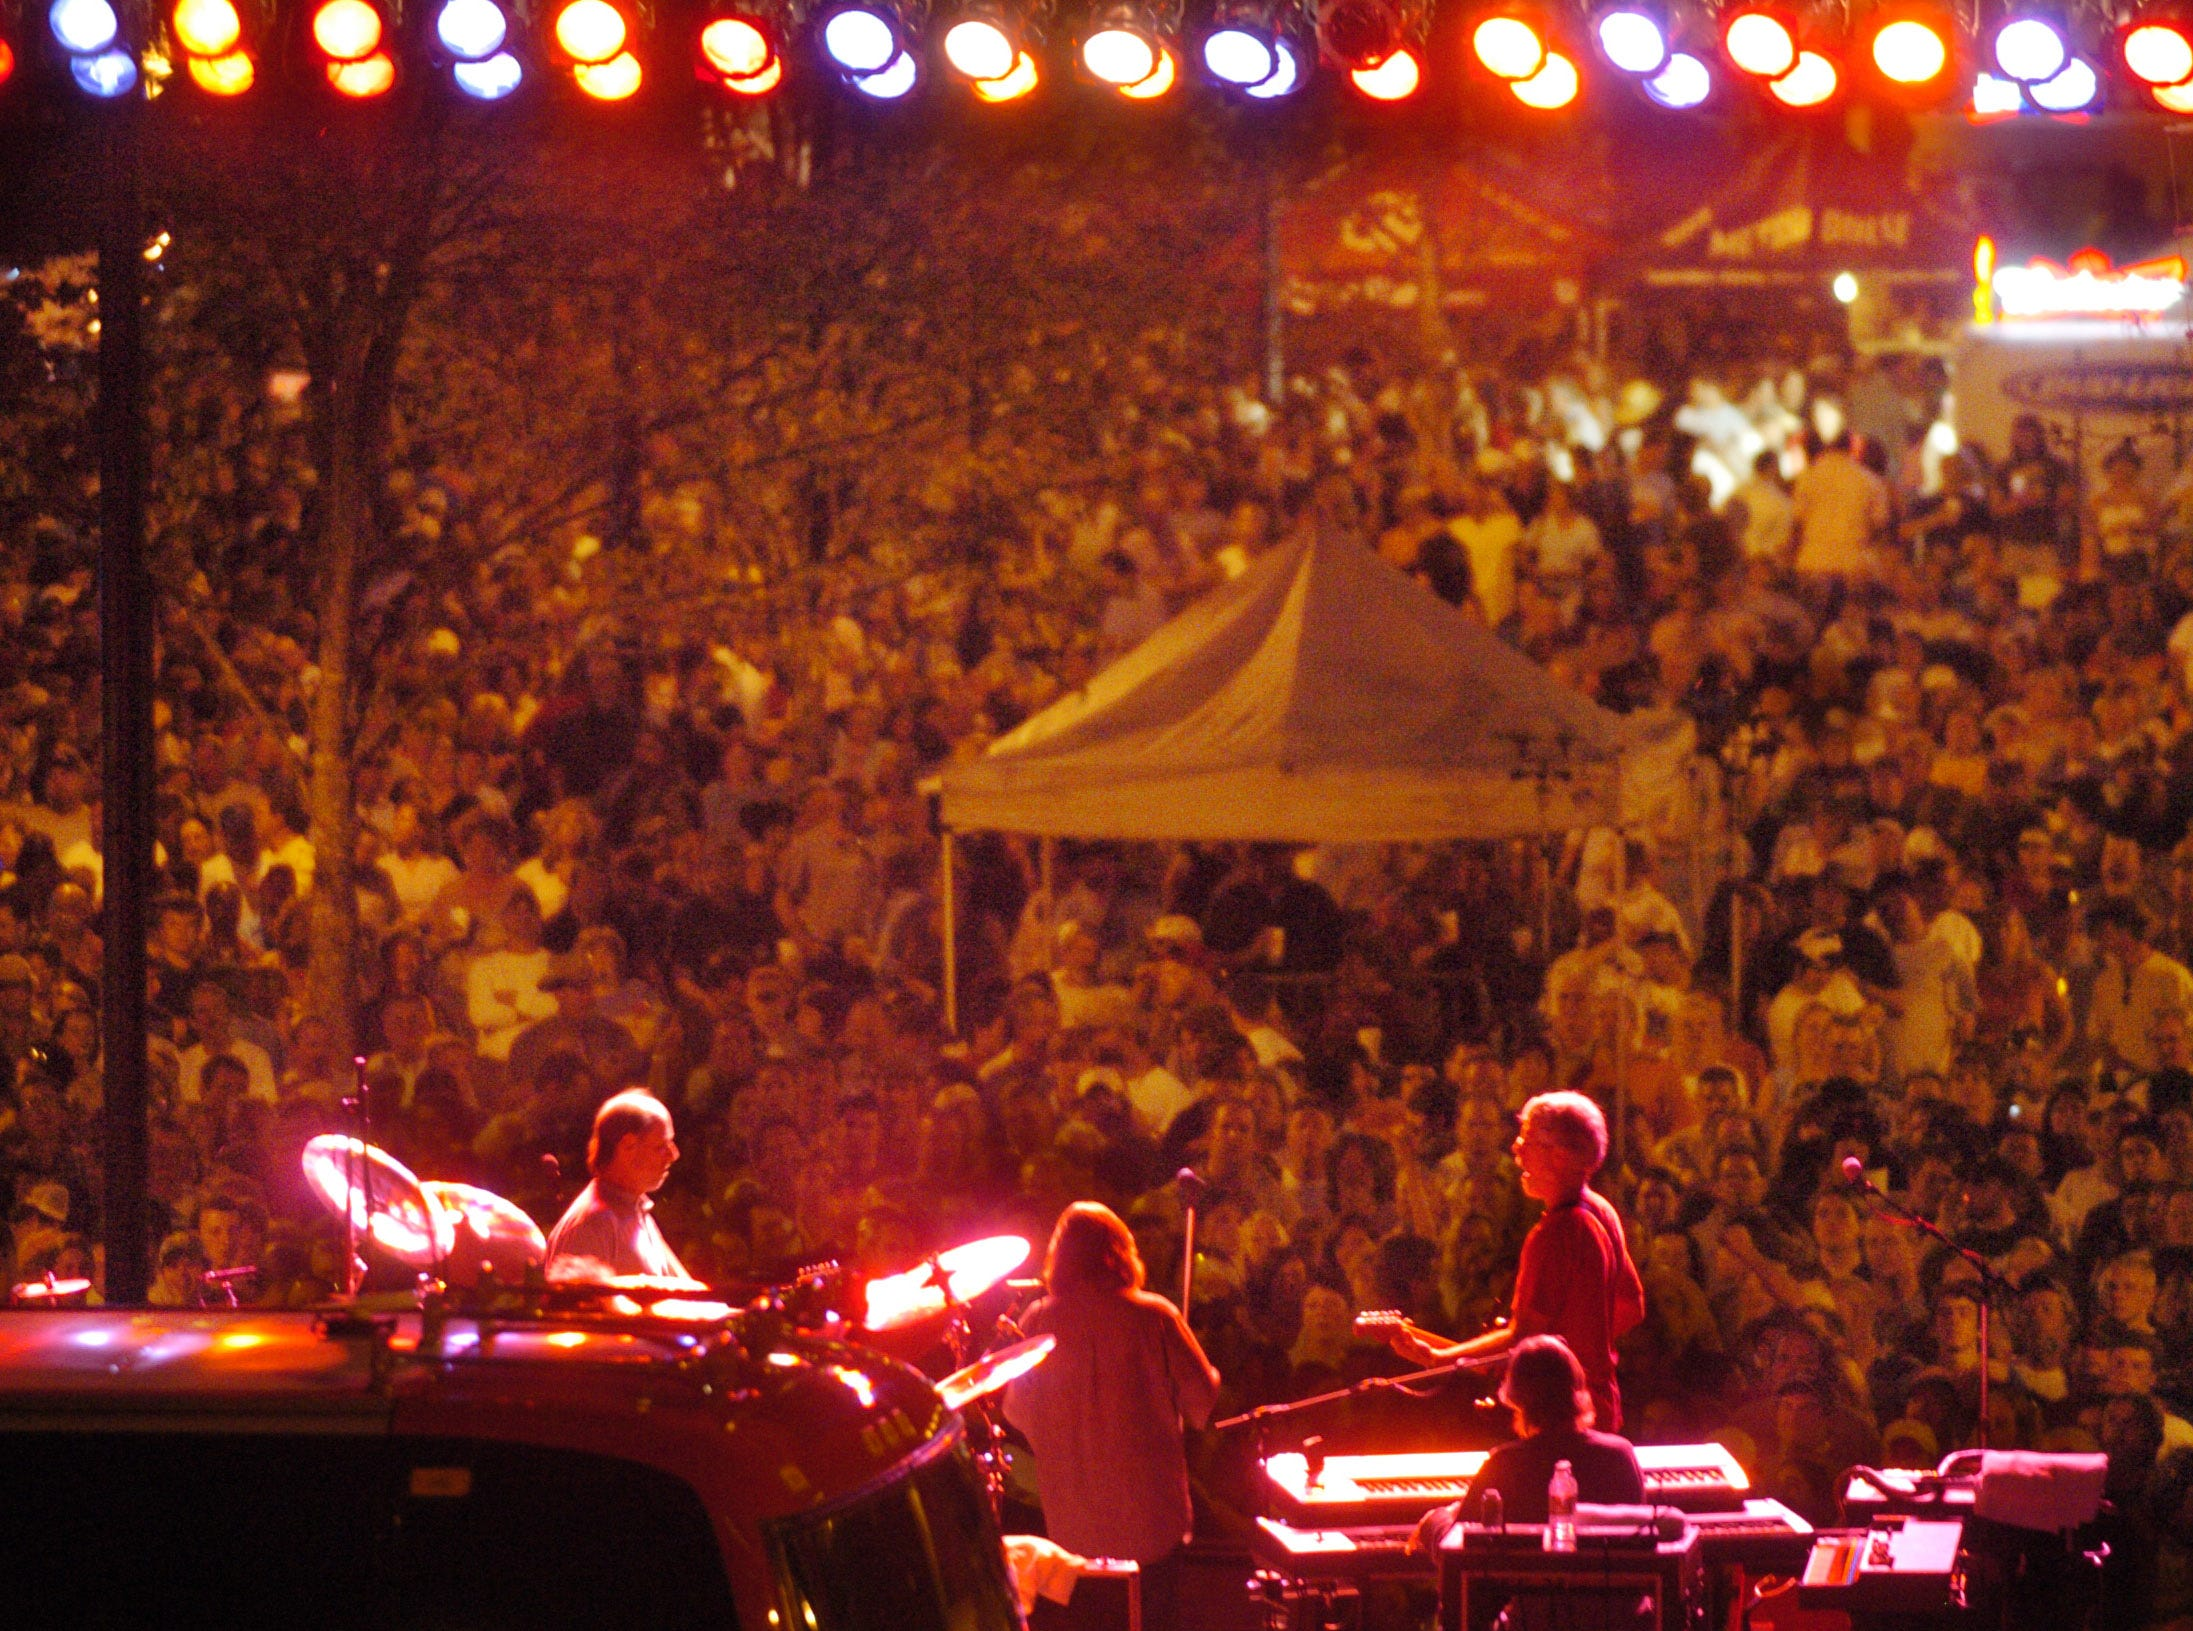 The band Little Feat performs at the opening night of Sundown in the City on Market Square in Knoxville Thursday night. Jeff Adkins/NEWS SENTINEL ----04/13/2006.